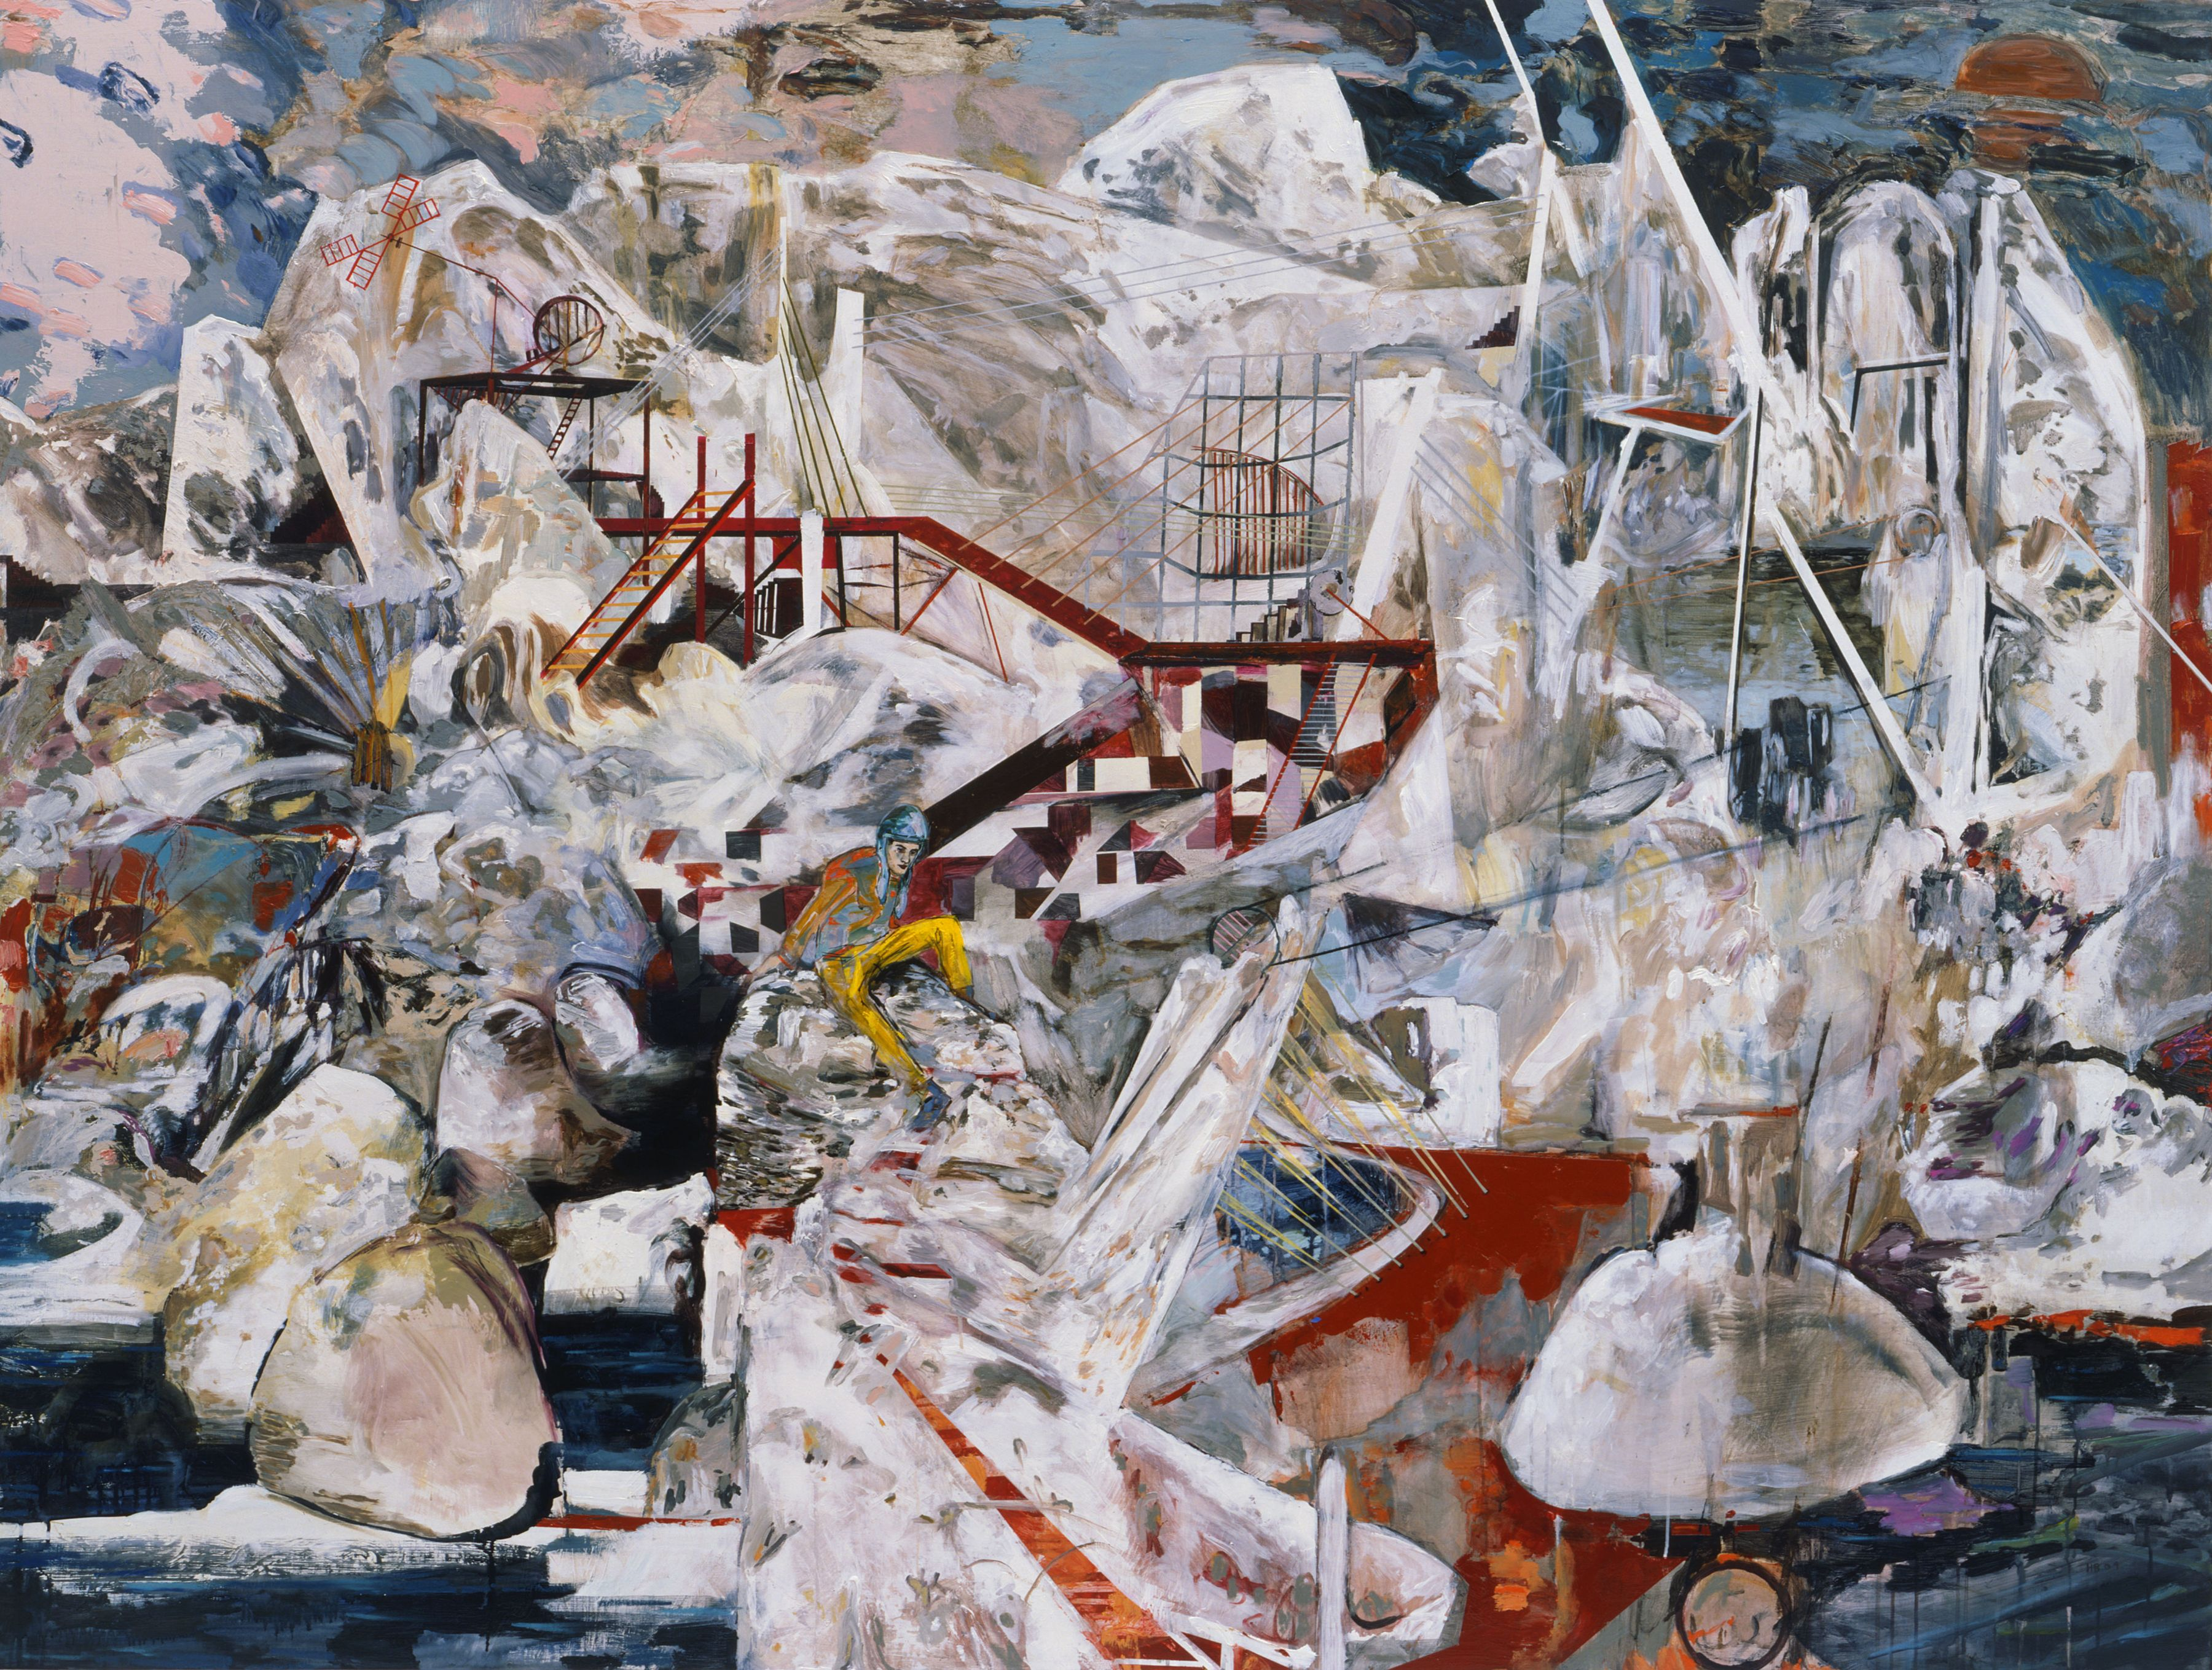 HERNAN BAS, Mystery Bouf (or, the kingdom after the flood), 2009